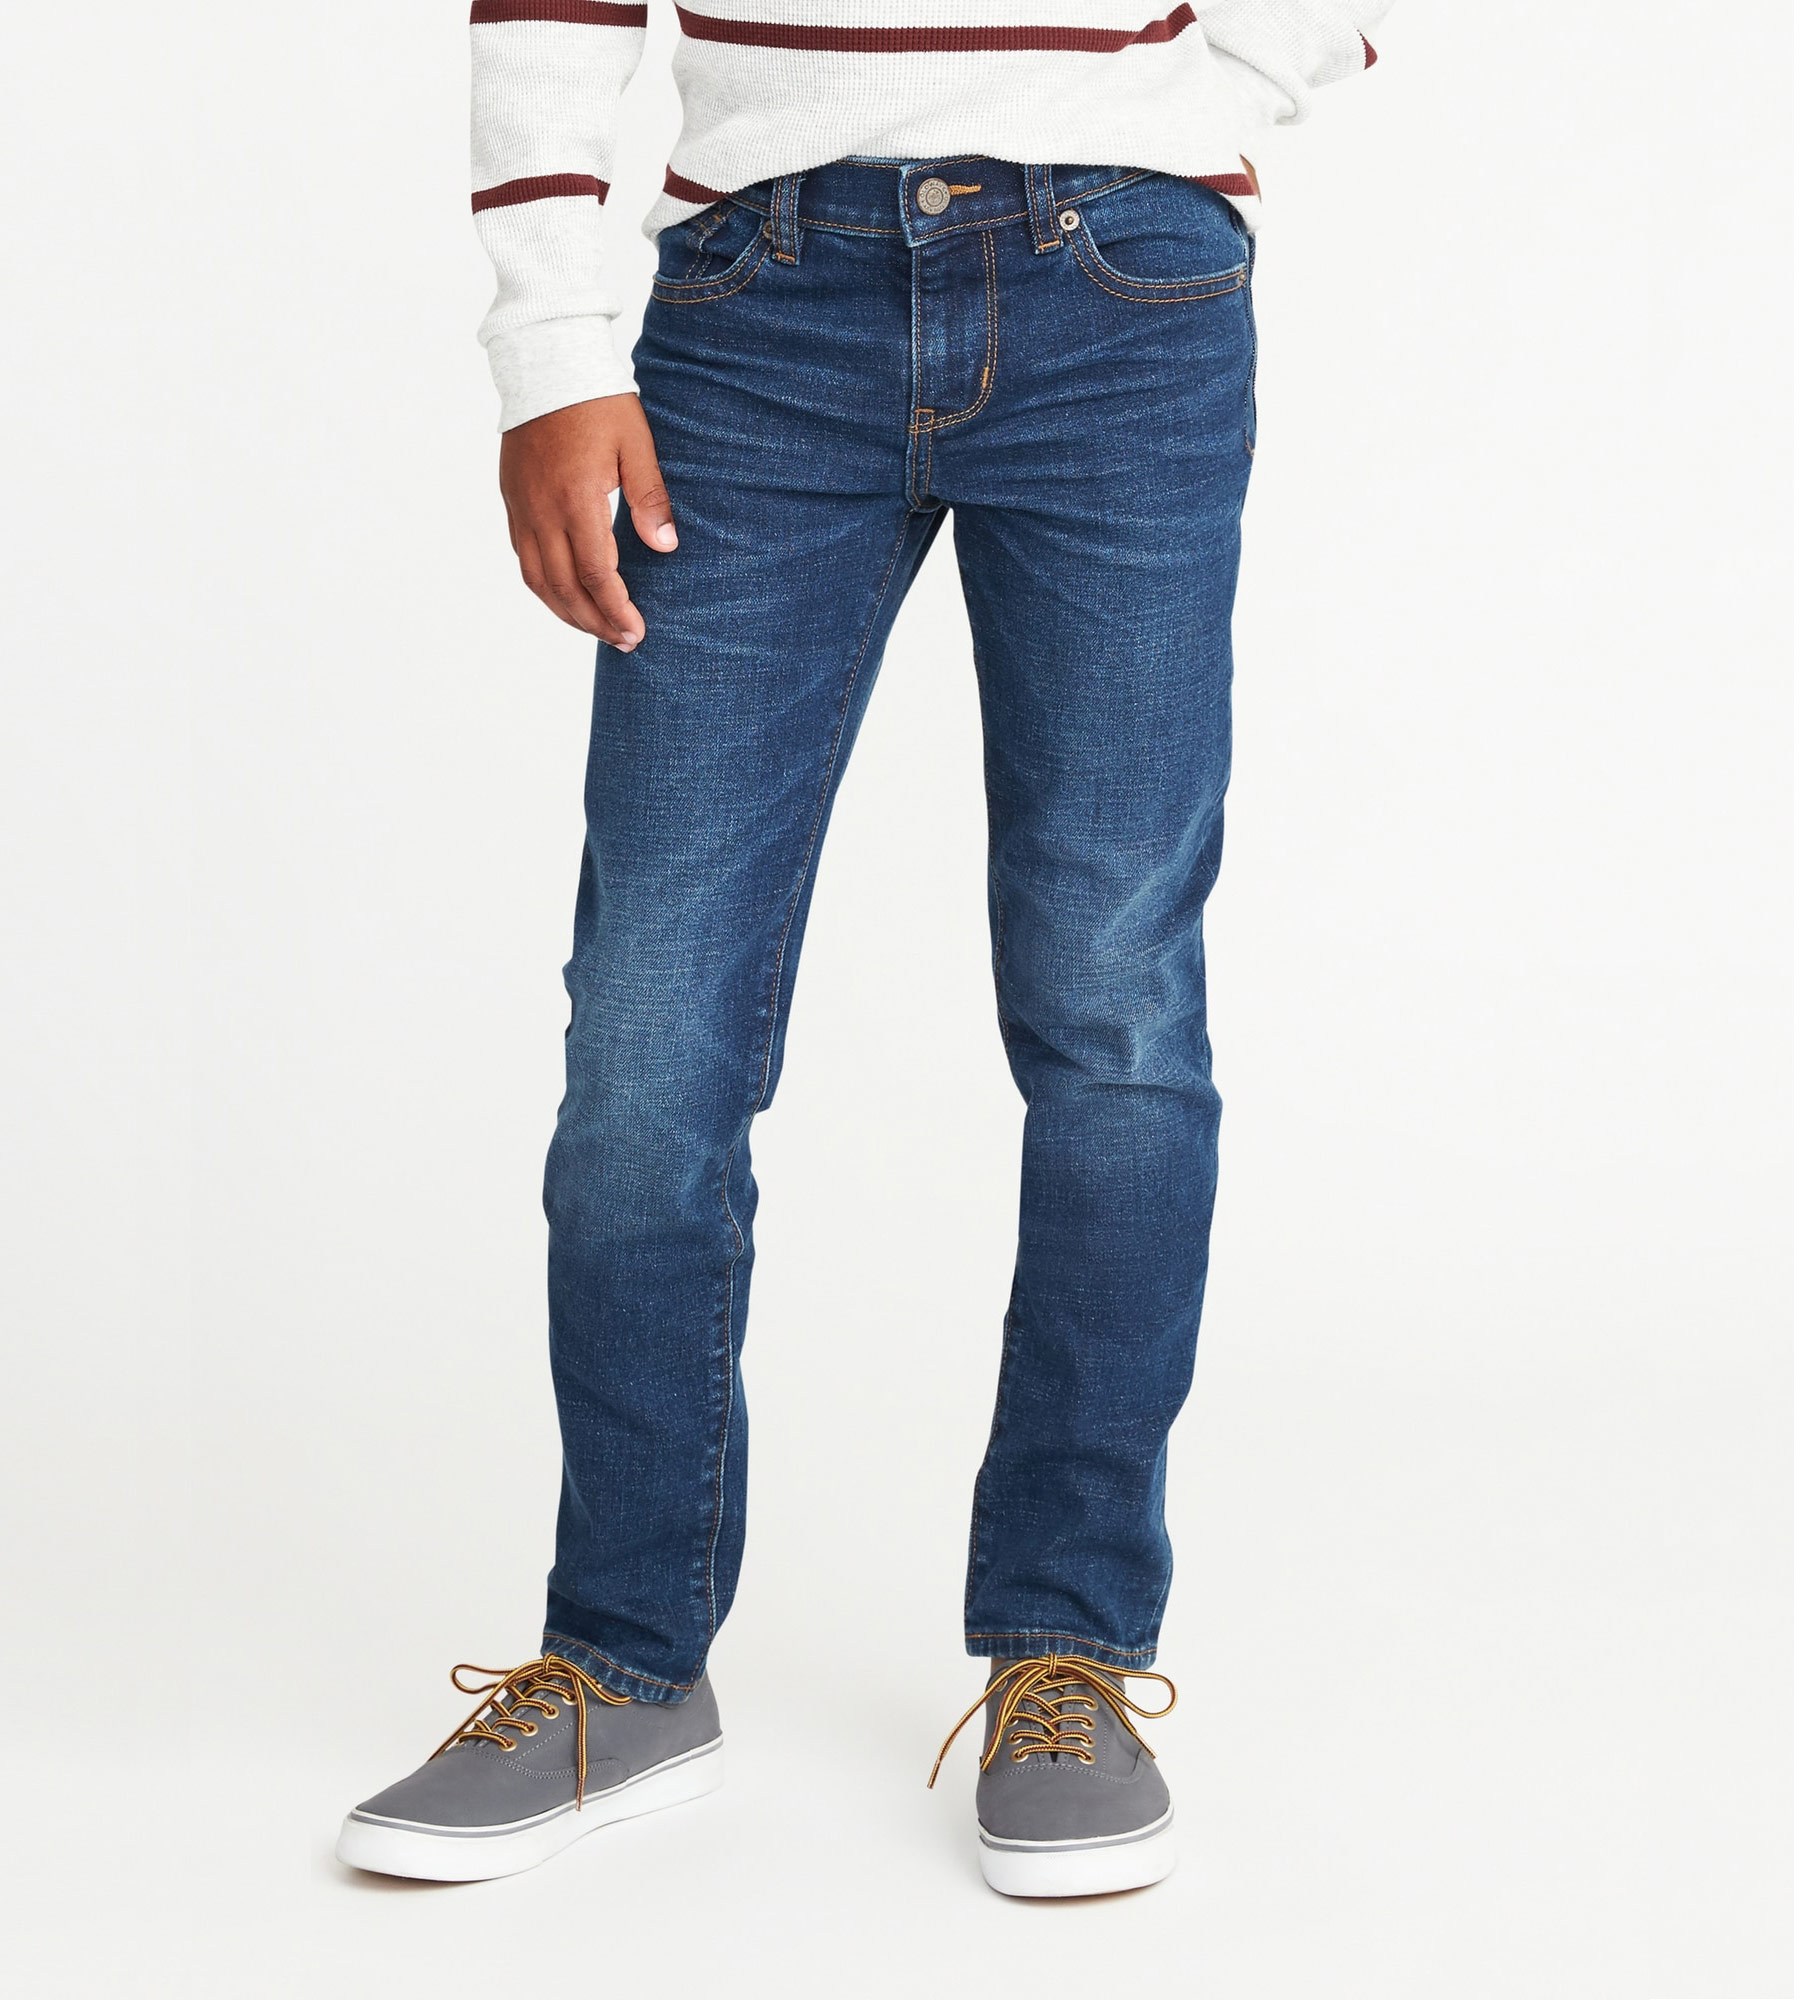 06907d14aadf4 Old Navy's Celebrity-Favorite Jeans Are On Sale Right Now | Real Simple